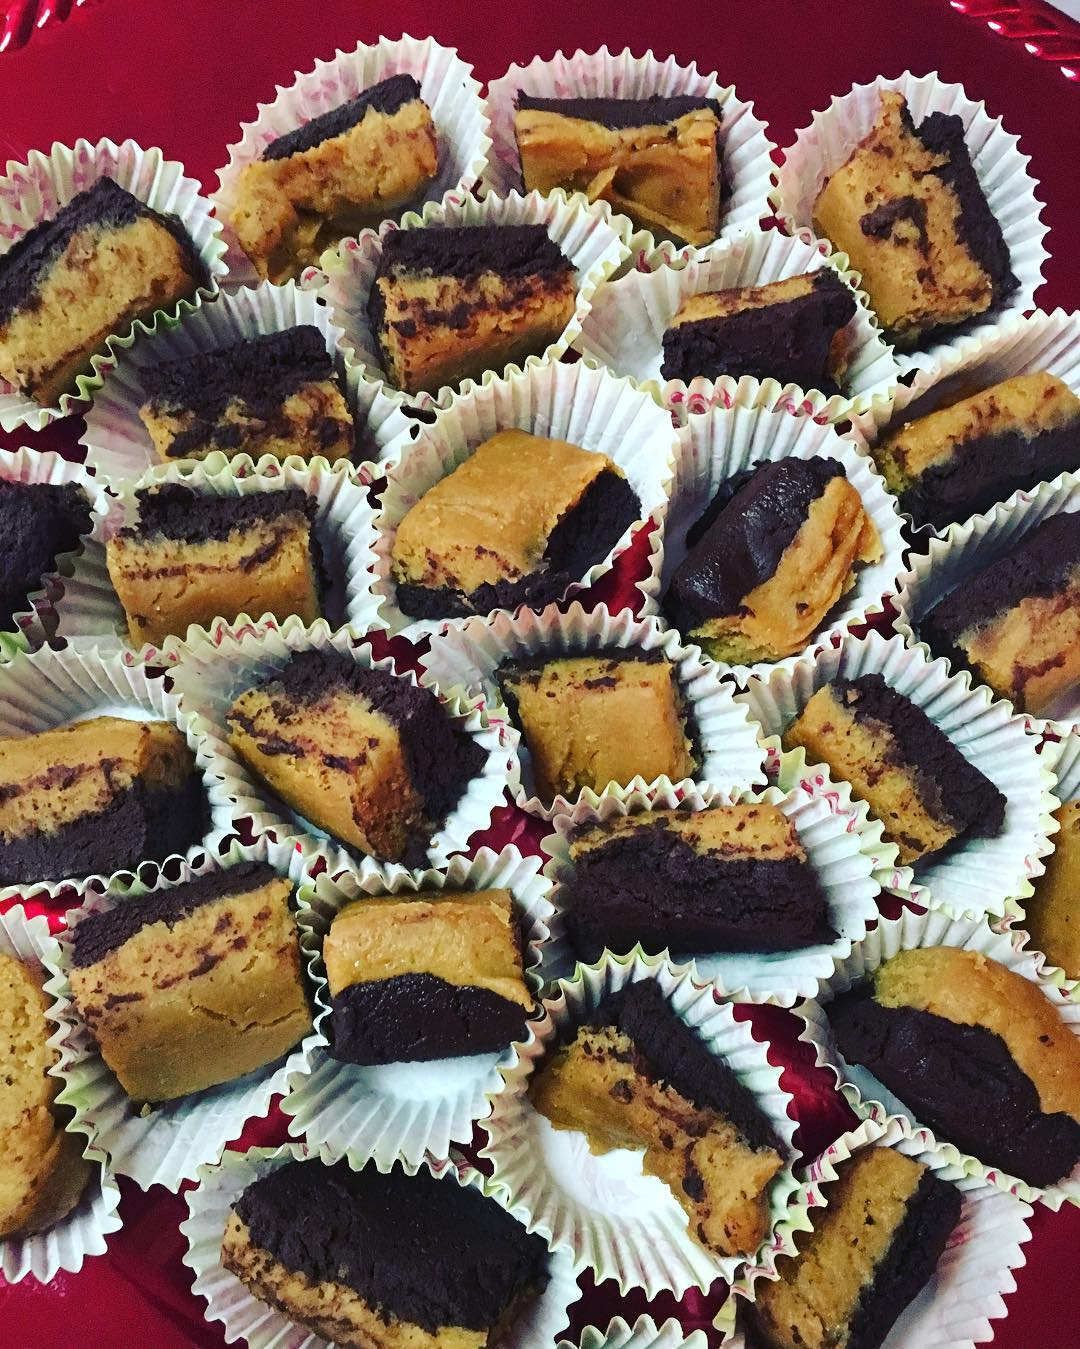 10-minute buckeye fudge by @fit_fiesty_foodlovingmama